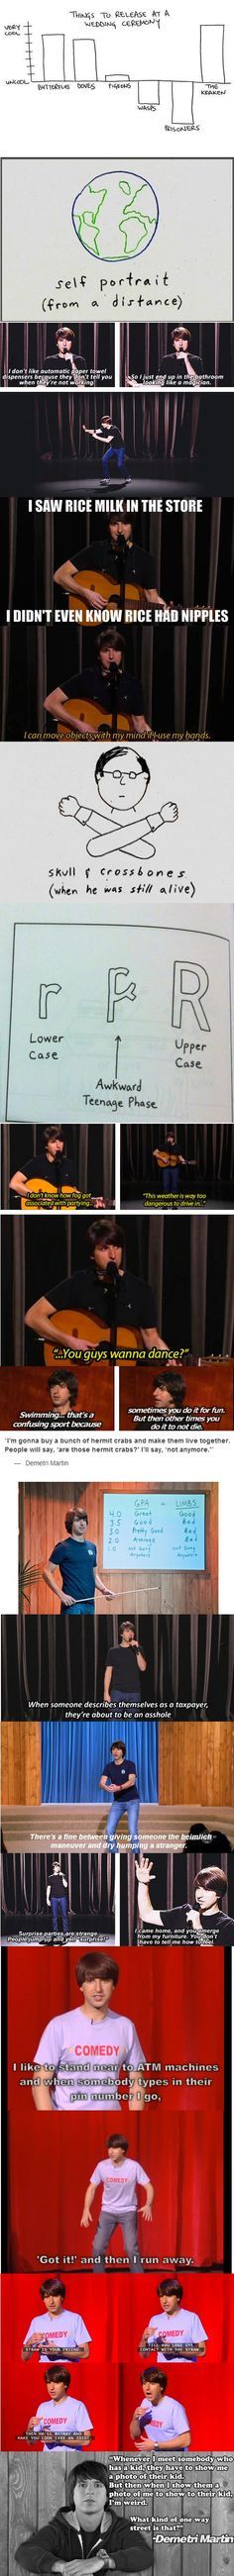 Demetri Martin. love it